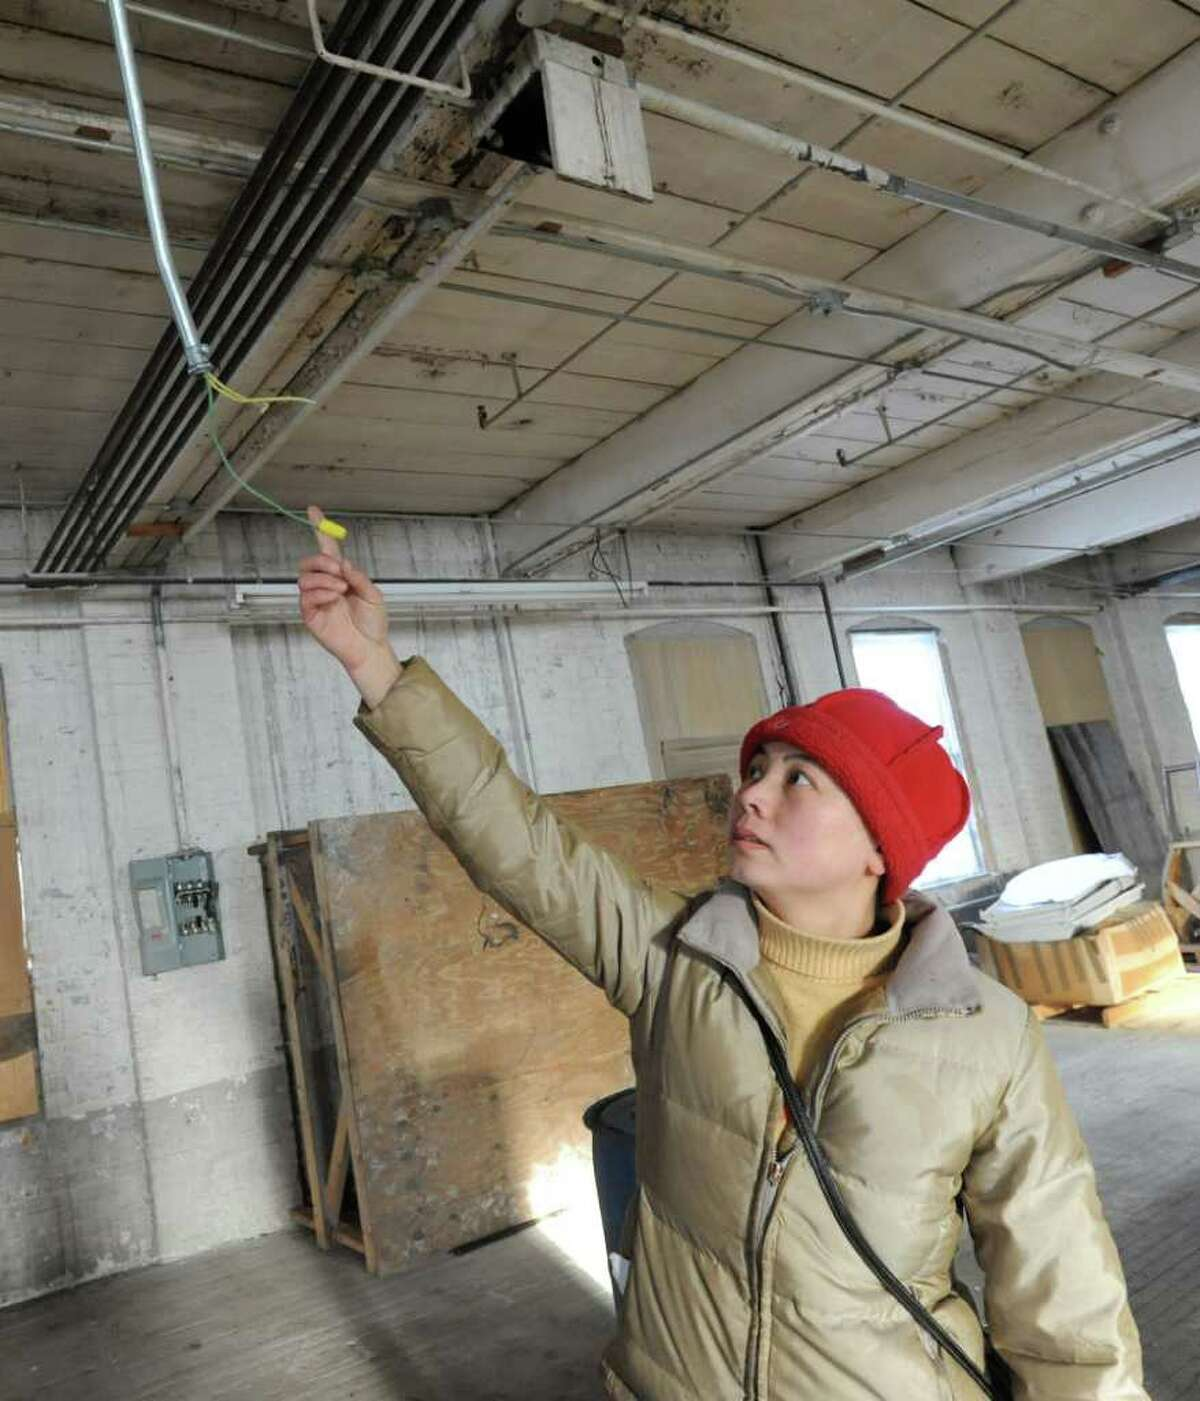 Sarah Cui shows a wire that was deliberately cut at a warehouse where vandalism occurred to property owned by Buddhist community in Amsterdam, NY on January 20, 2011. (Lori Van Buren / Times Union)